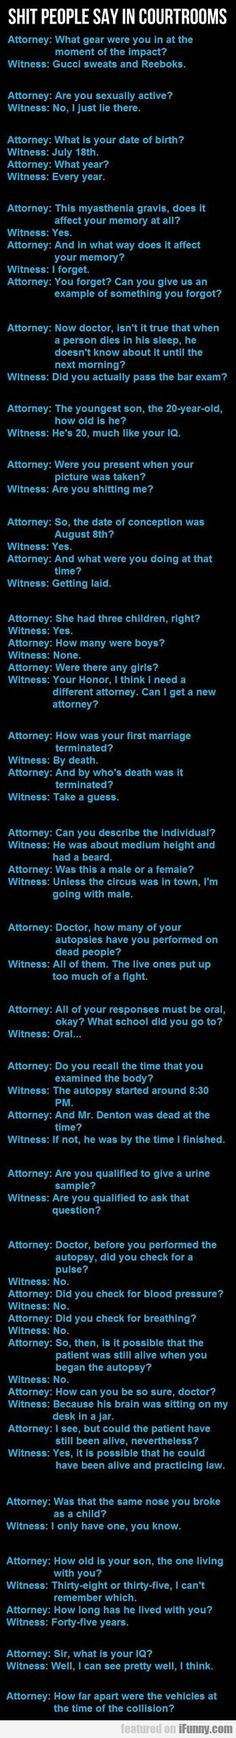 Shit people say in courtrooms.